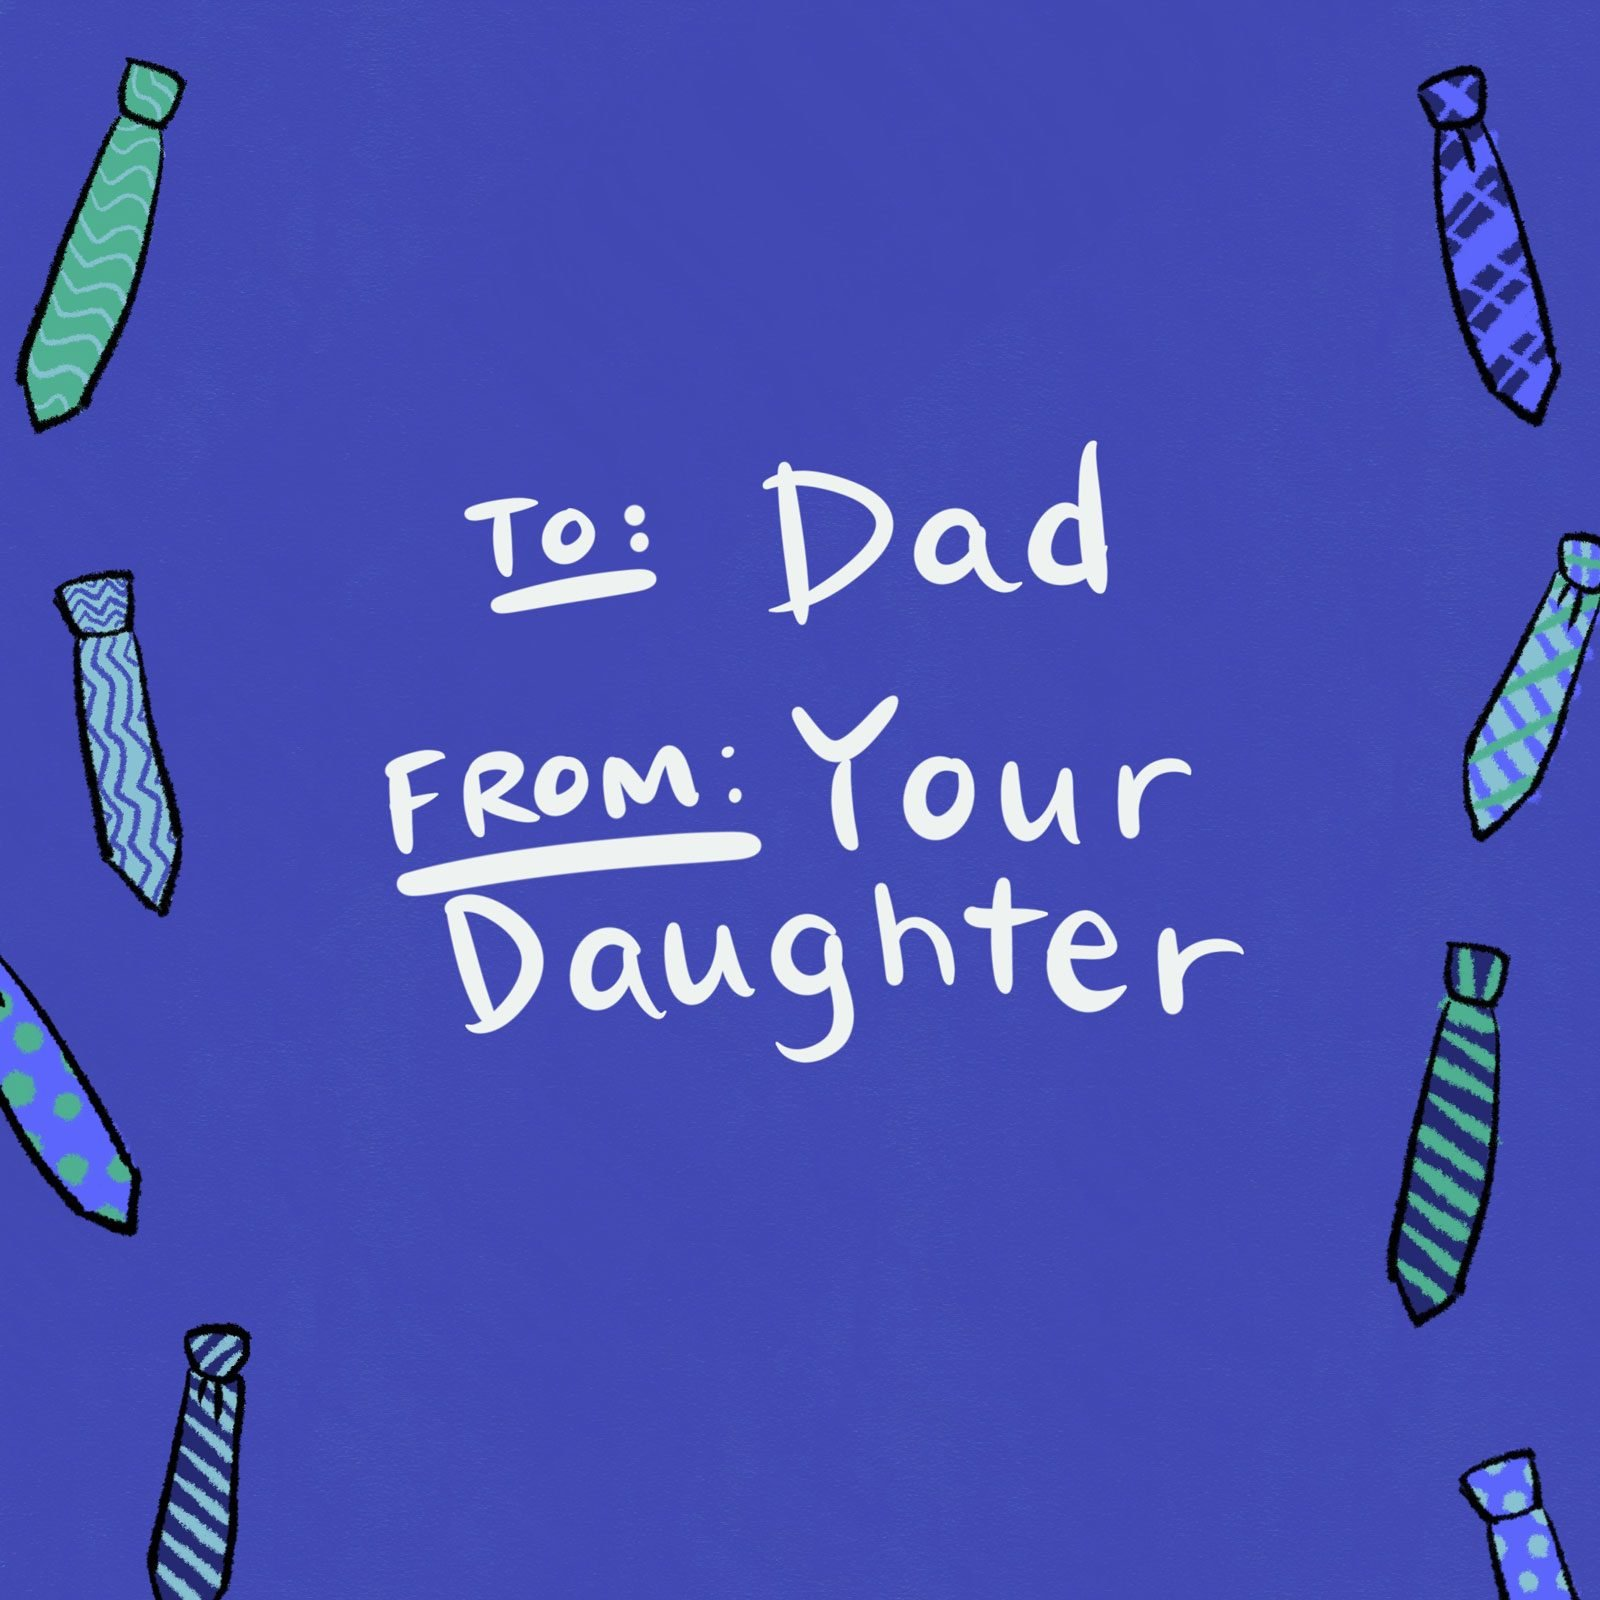 To: Dad. From: Your Daughter.